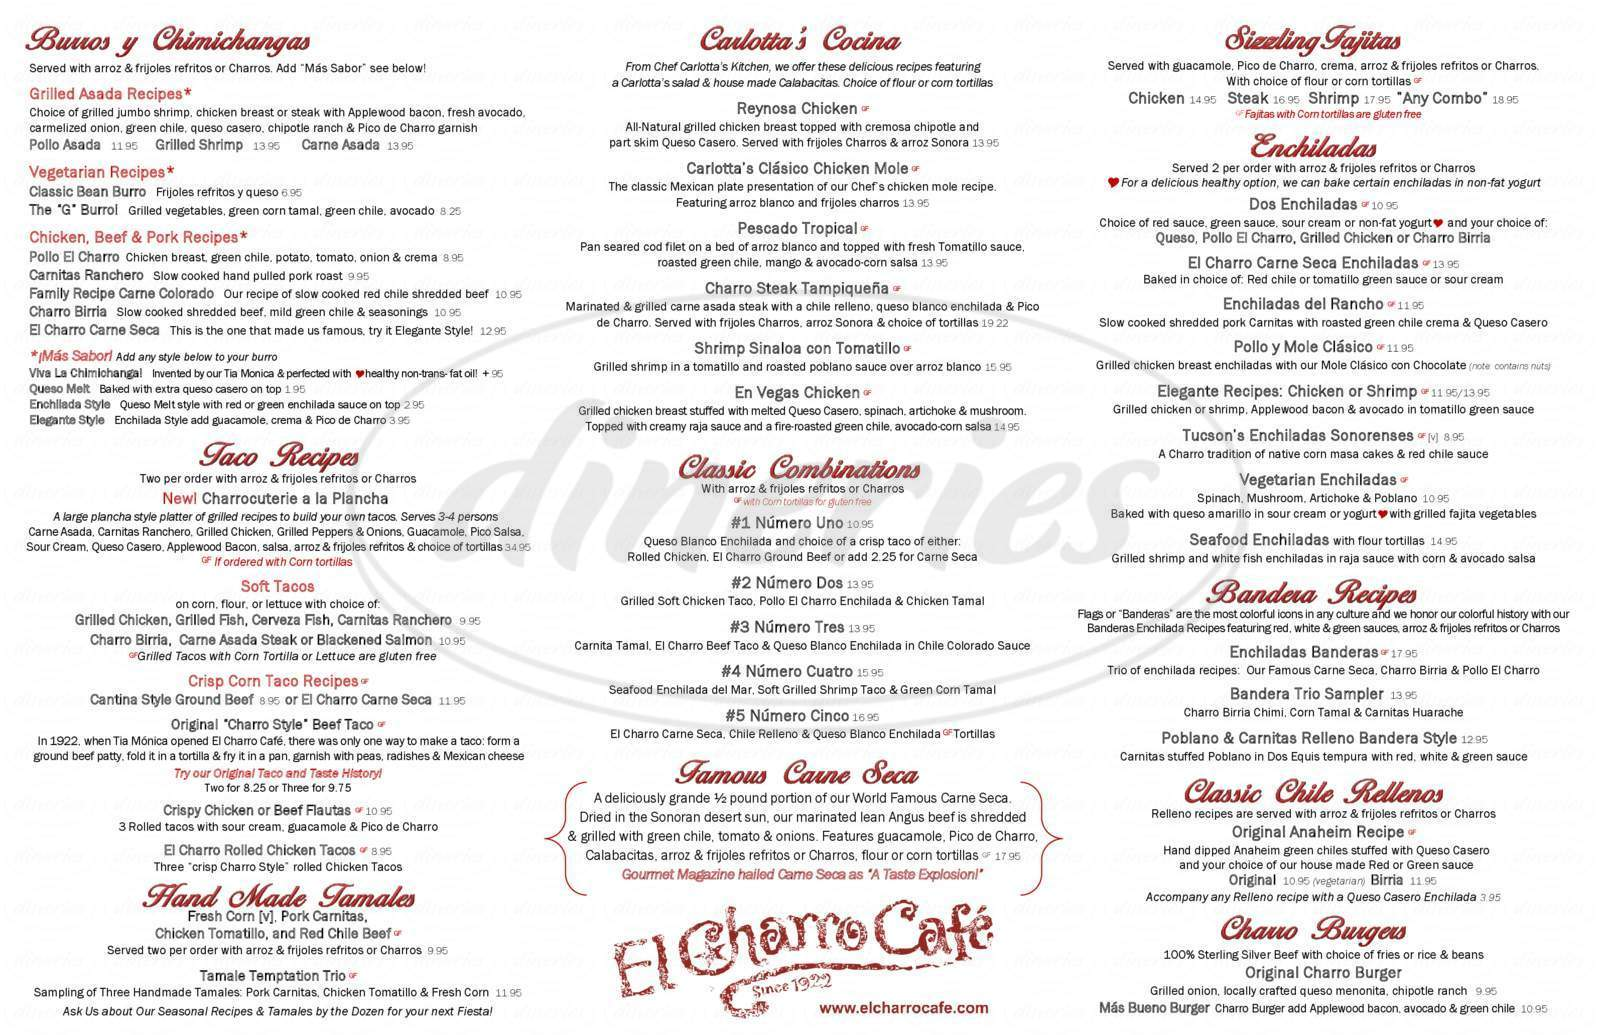 menu for El Charro Cafe